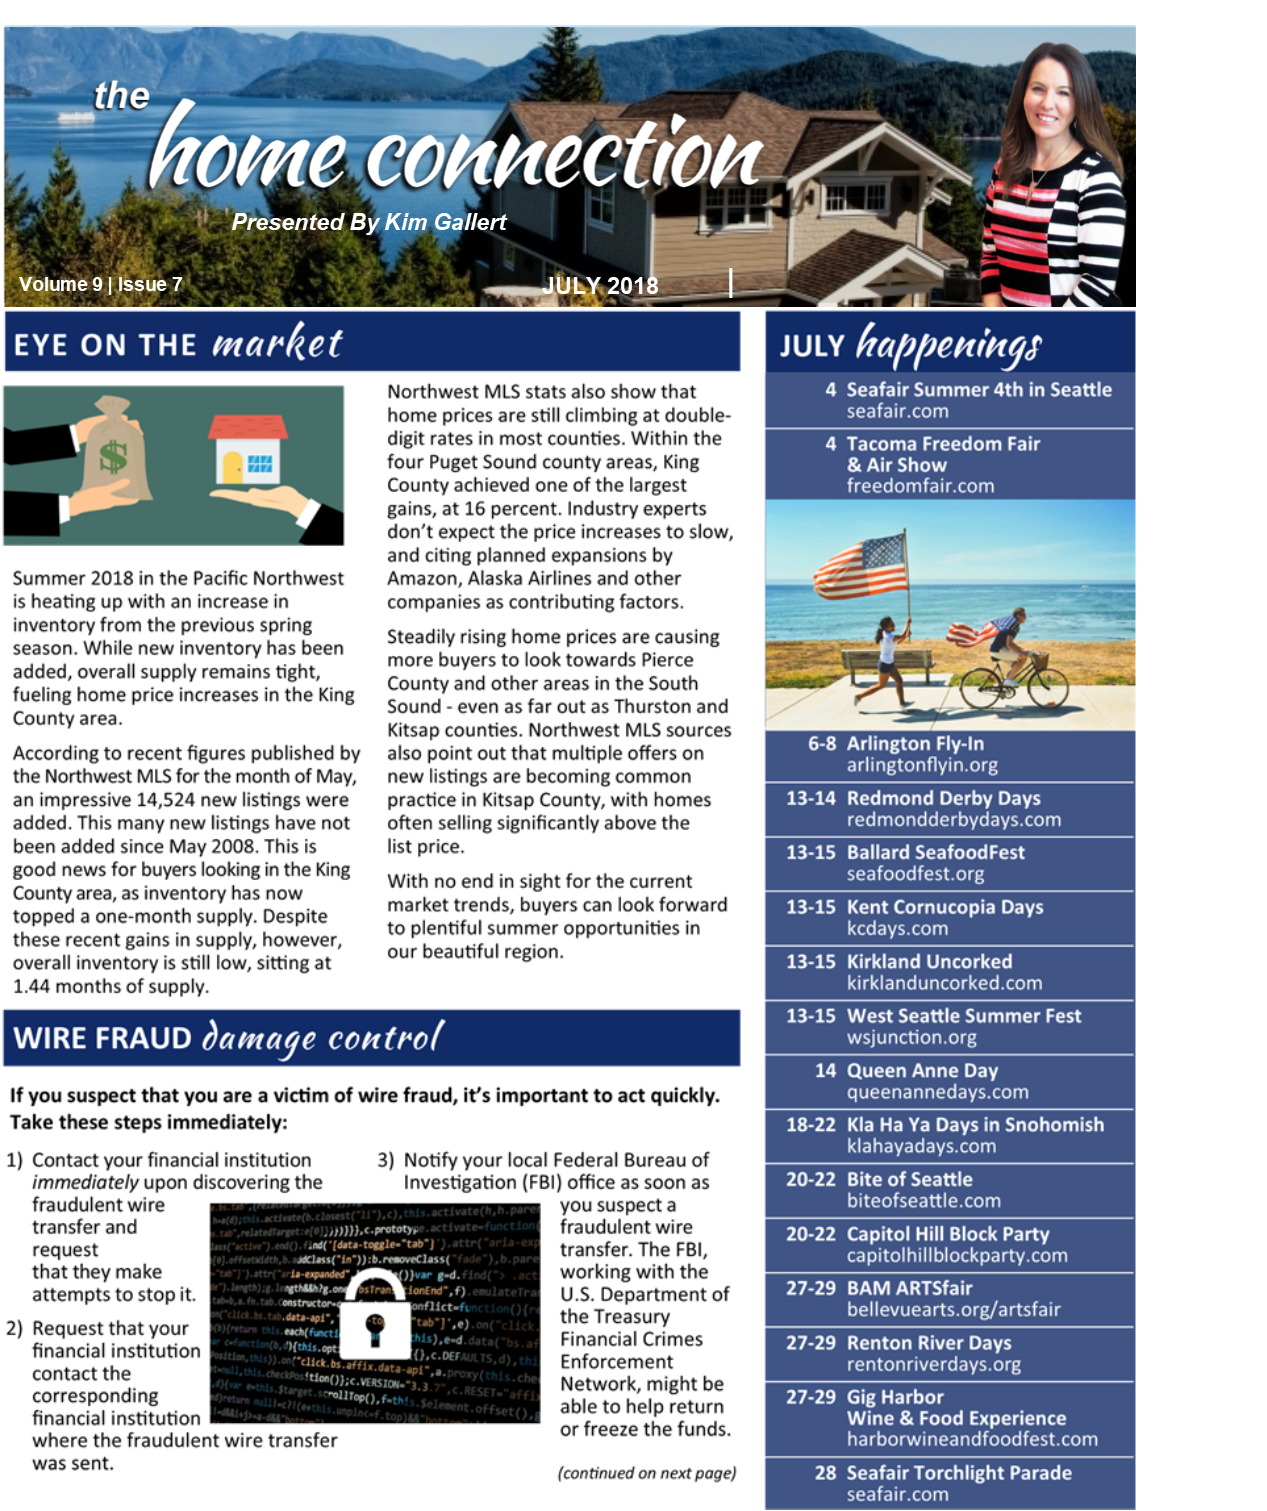 the home connection